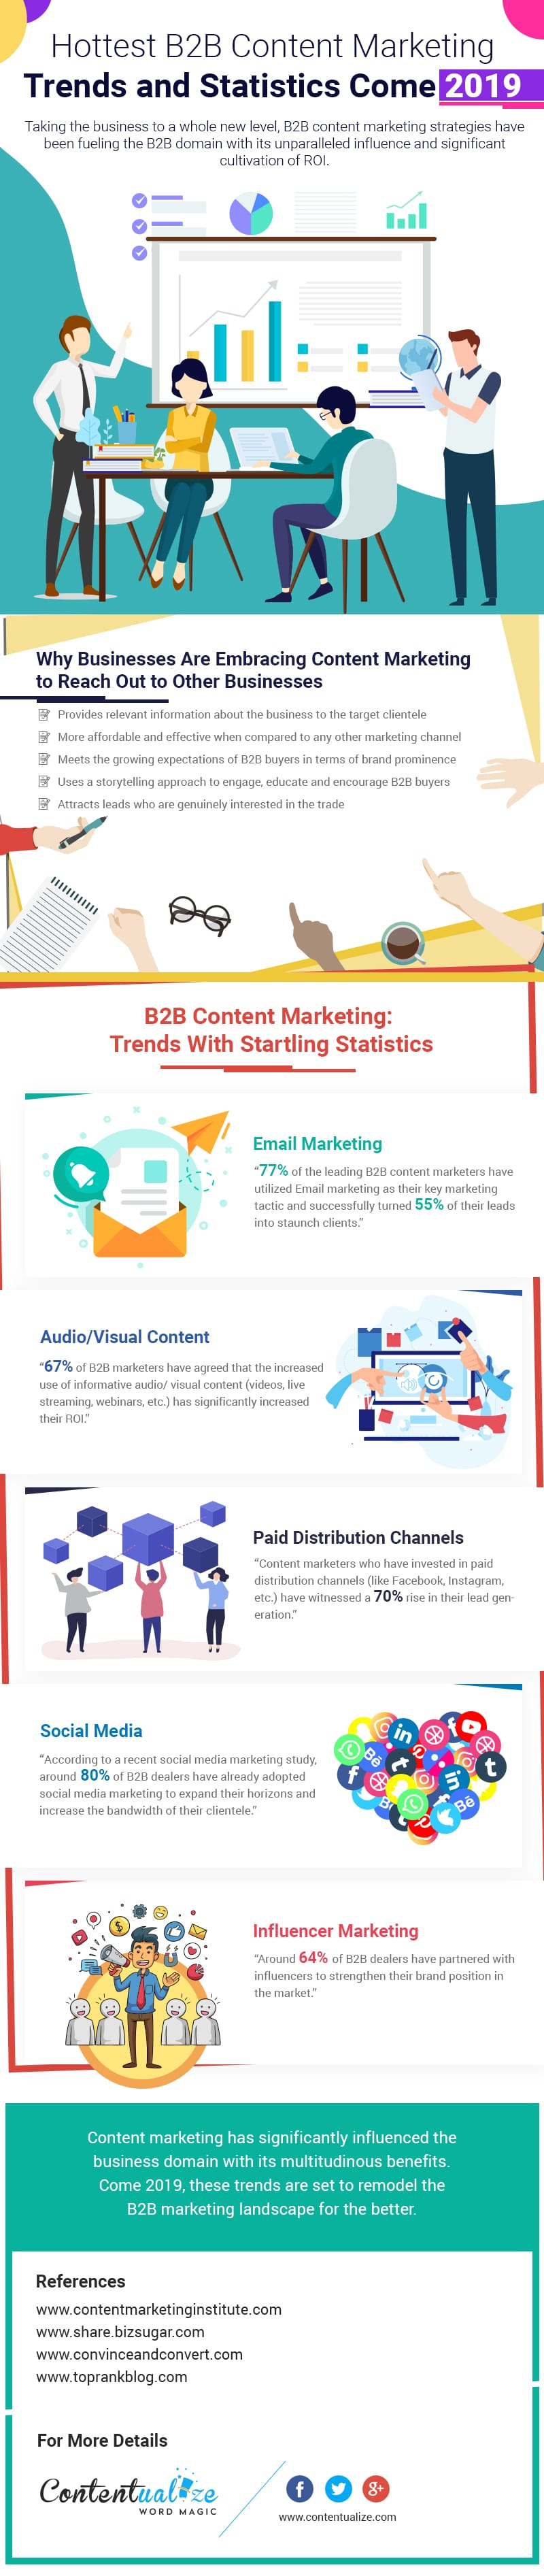 Content Marketing Trends and Statistics